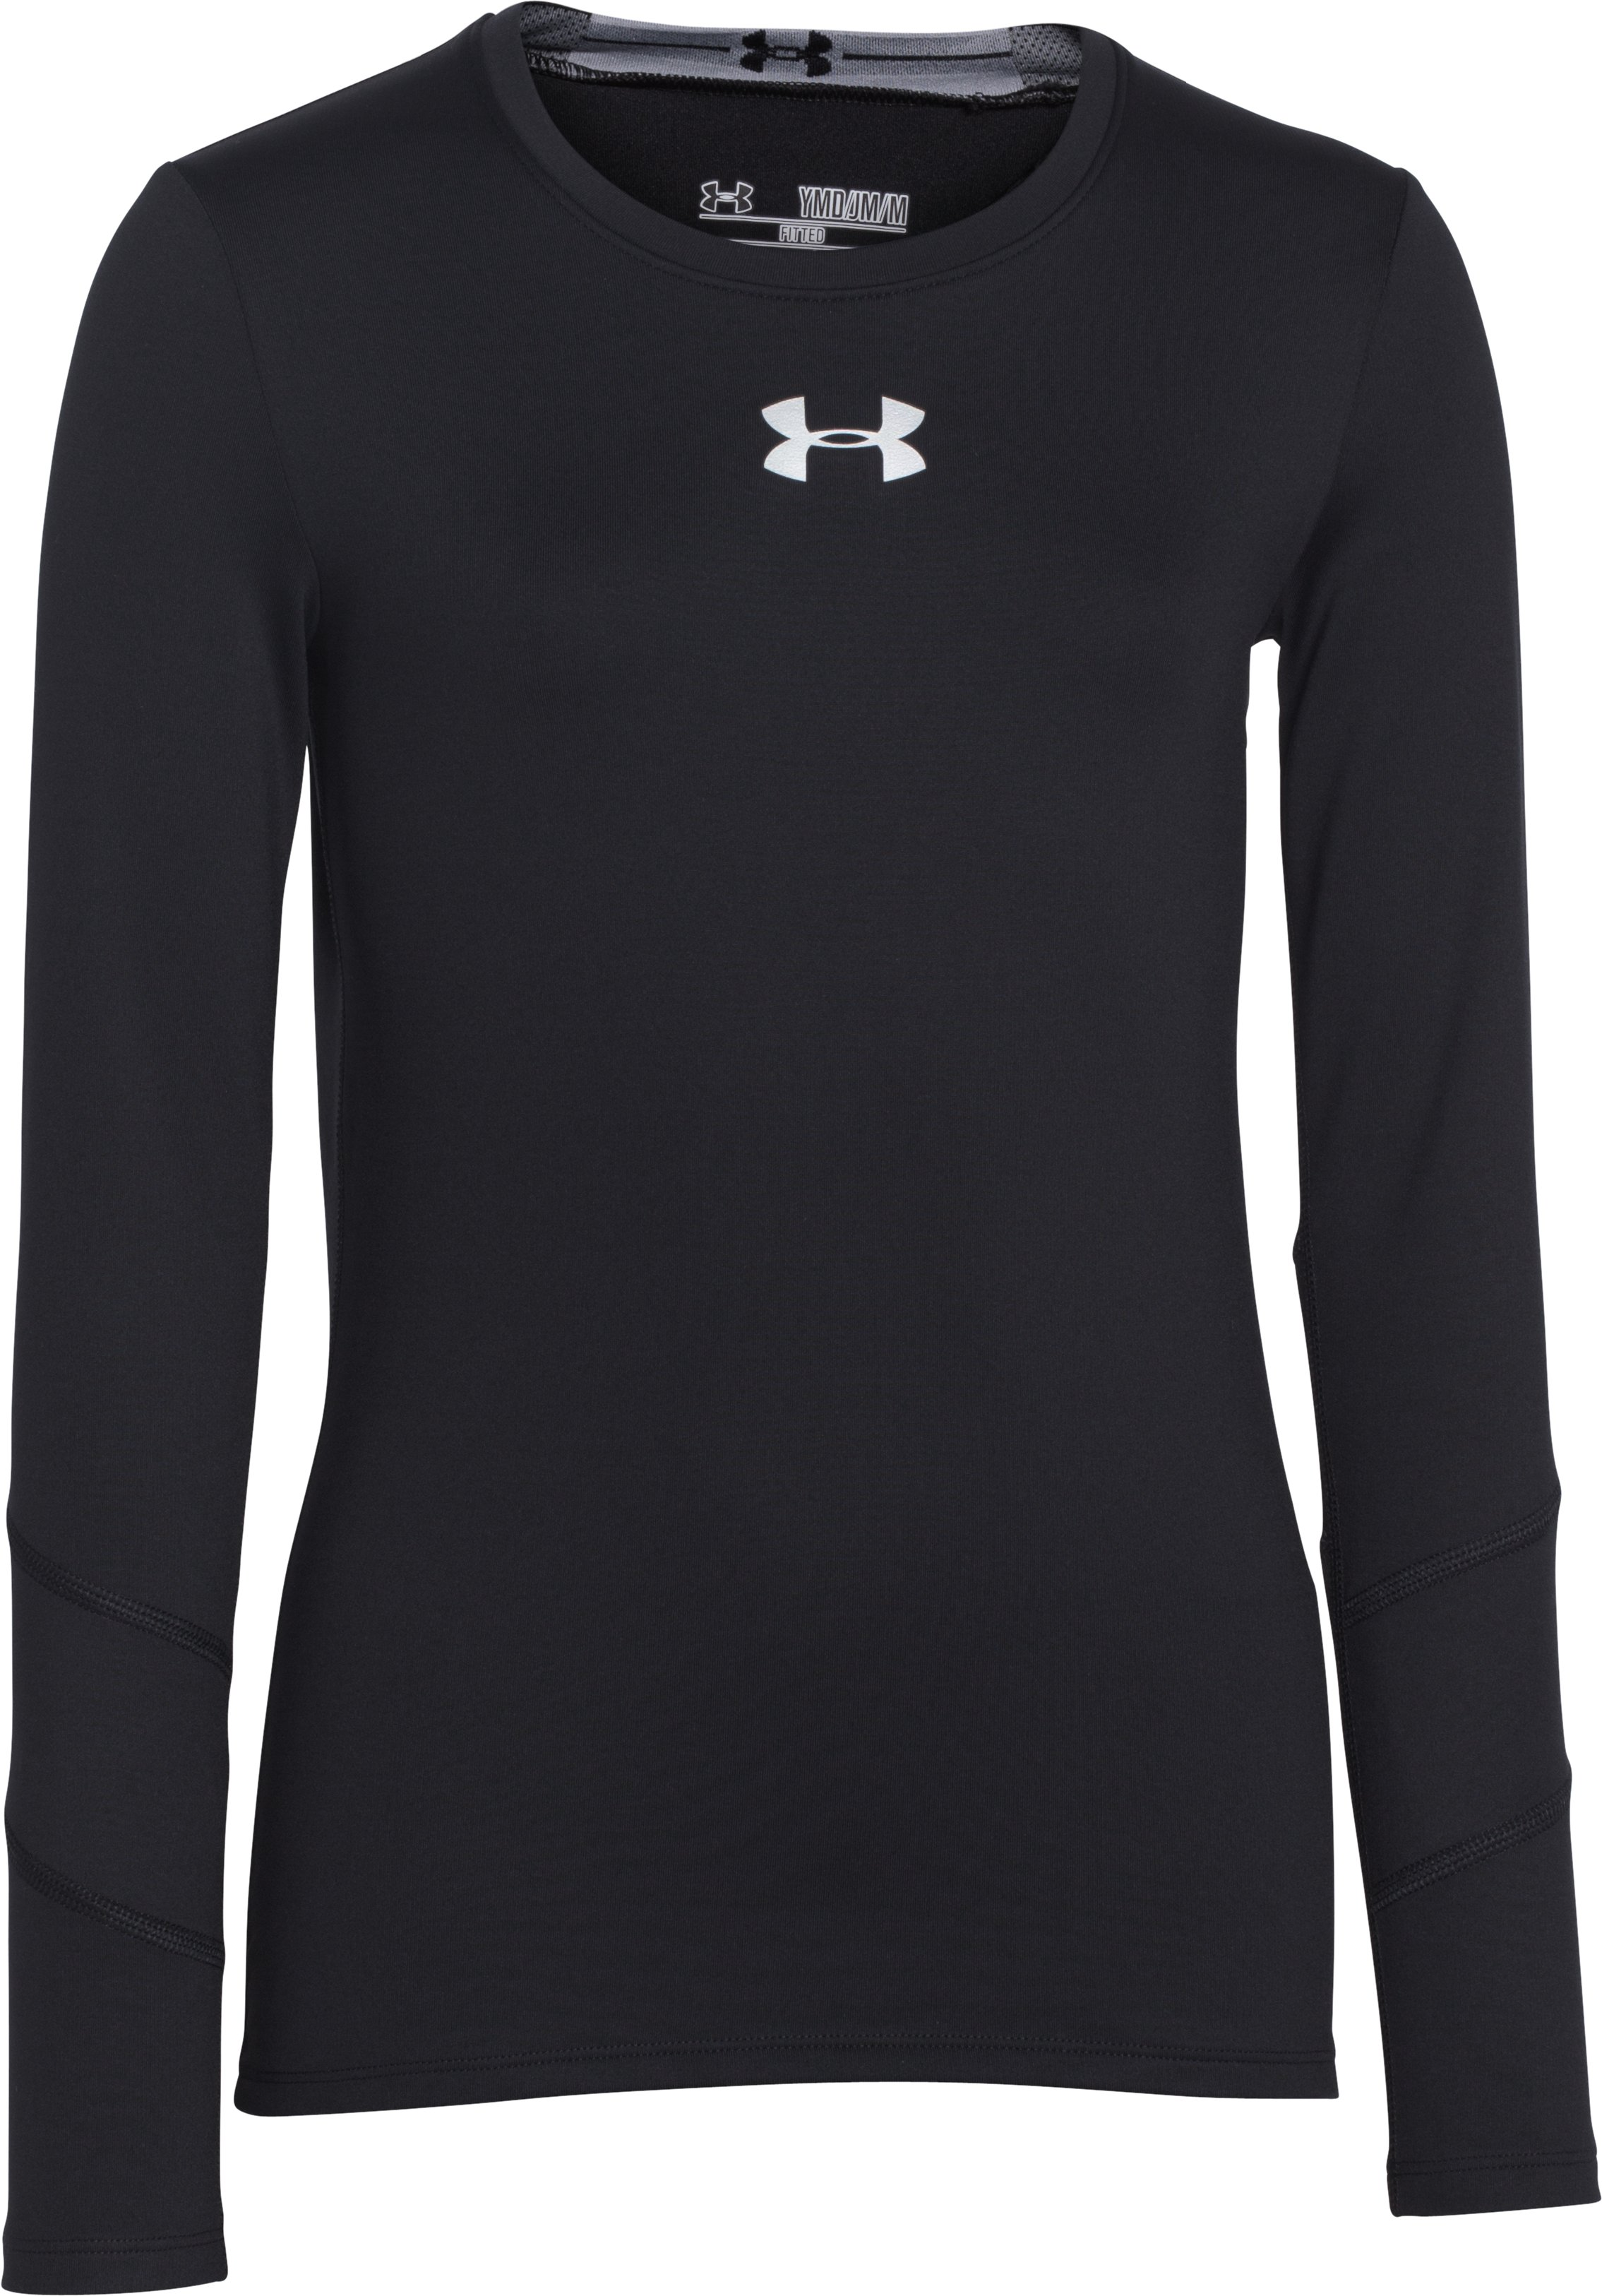 Girls' UA ColdGear® Long Sleeve, Black , zoomed image